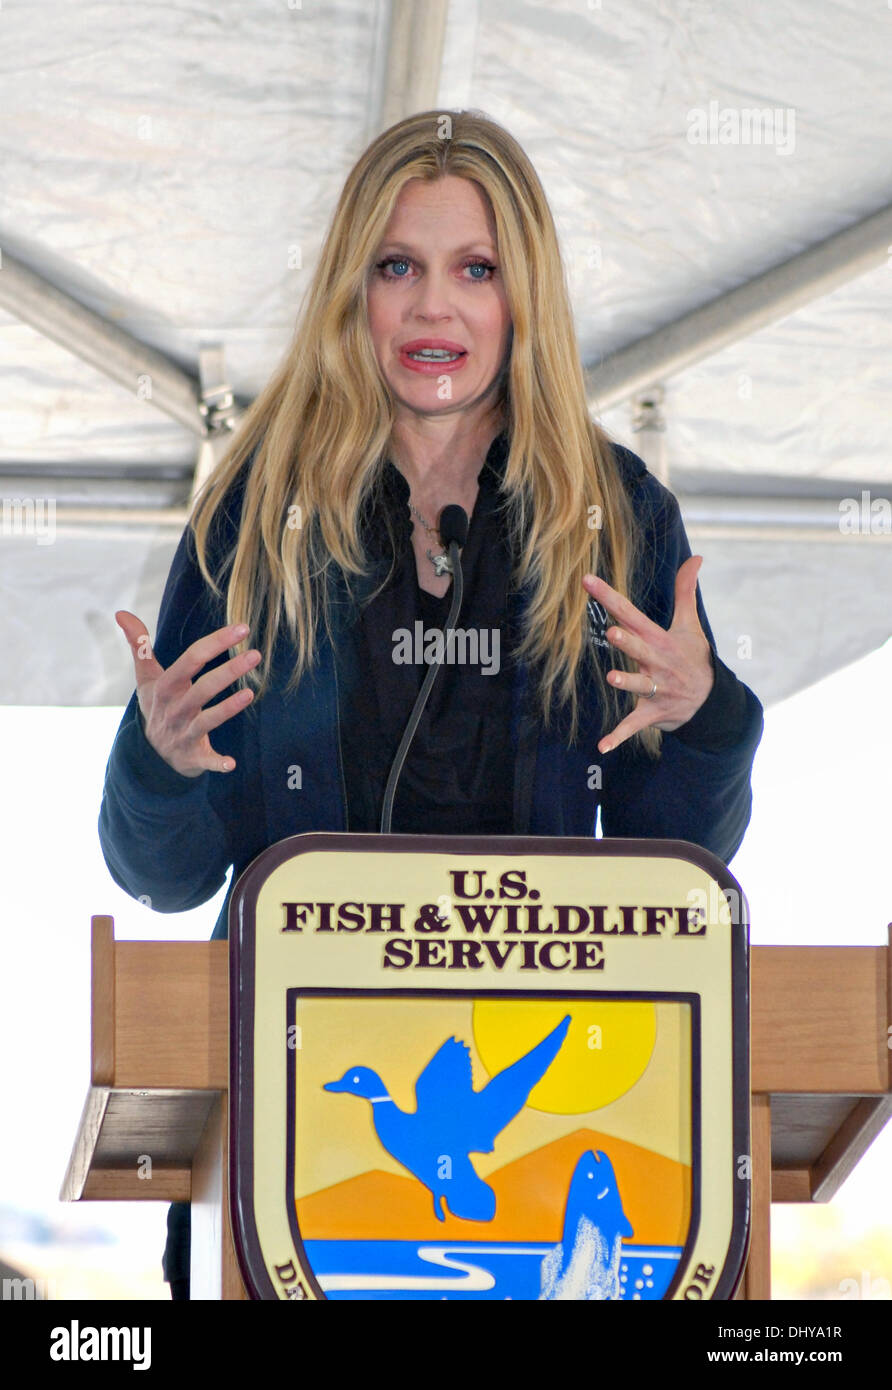 Actress Kristin Bauer speaks at the first US Fish & Wildlife crushing of confiscated ivory November 14, 2013 in Commerce City, CO. The ivory stockpile collected over the past 25 years through smuggling busts and border confiscations was fed through a stone crusher and destroyed to discourage poaching. - Stock Image